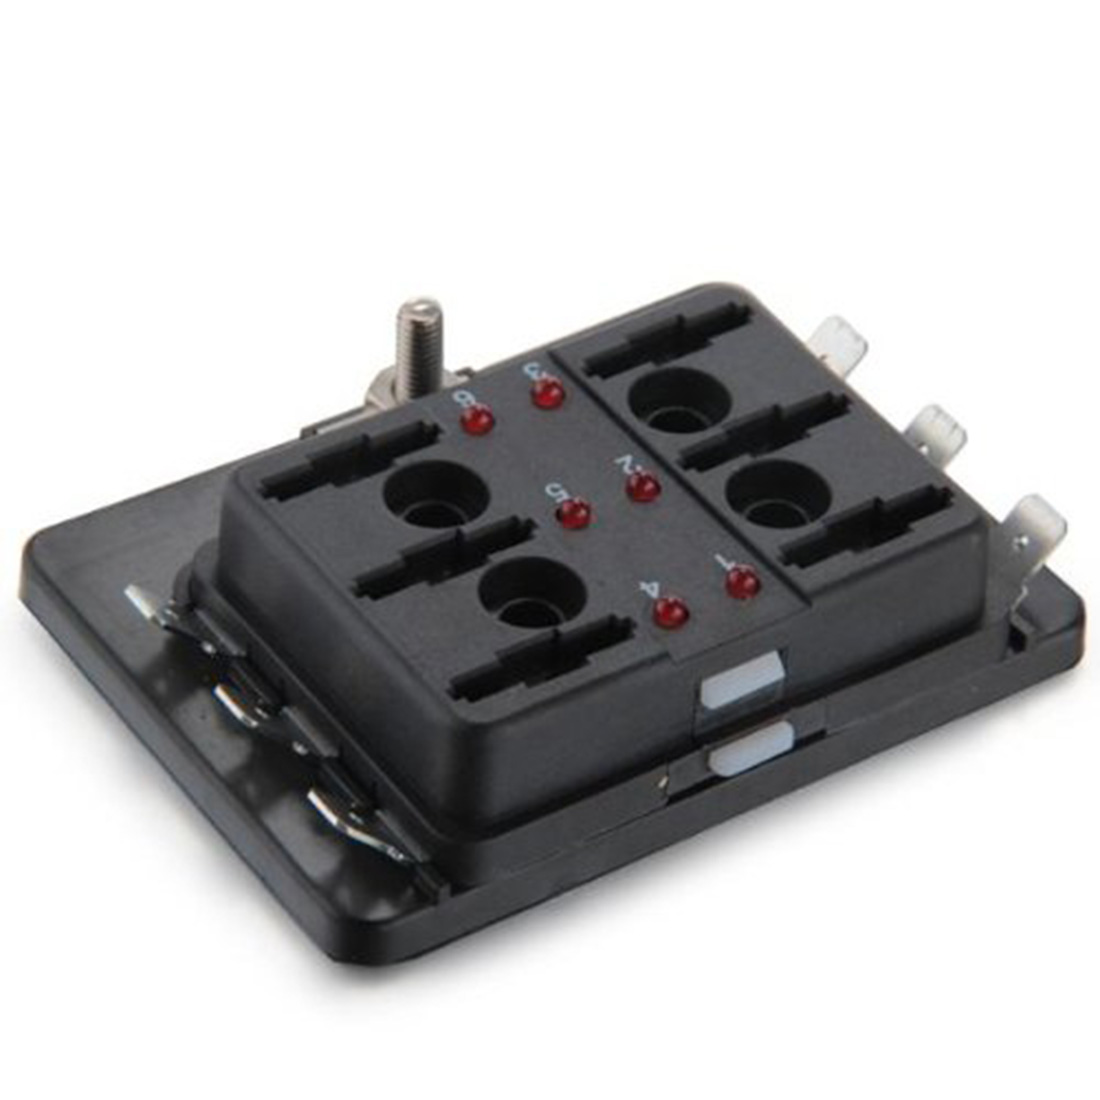 Marsnaska Hot Sale 6 Way Blade Fuse Box Holder Positive Bus In 12v Melted When The Fuses Are Led Bulb Will Be Onone And Six Out Working Mode Package Includes 1 X